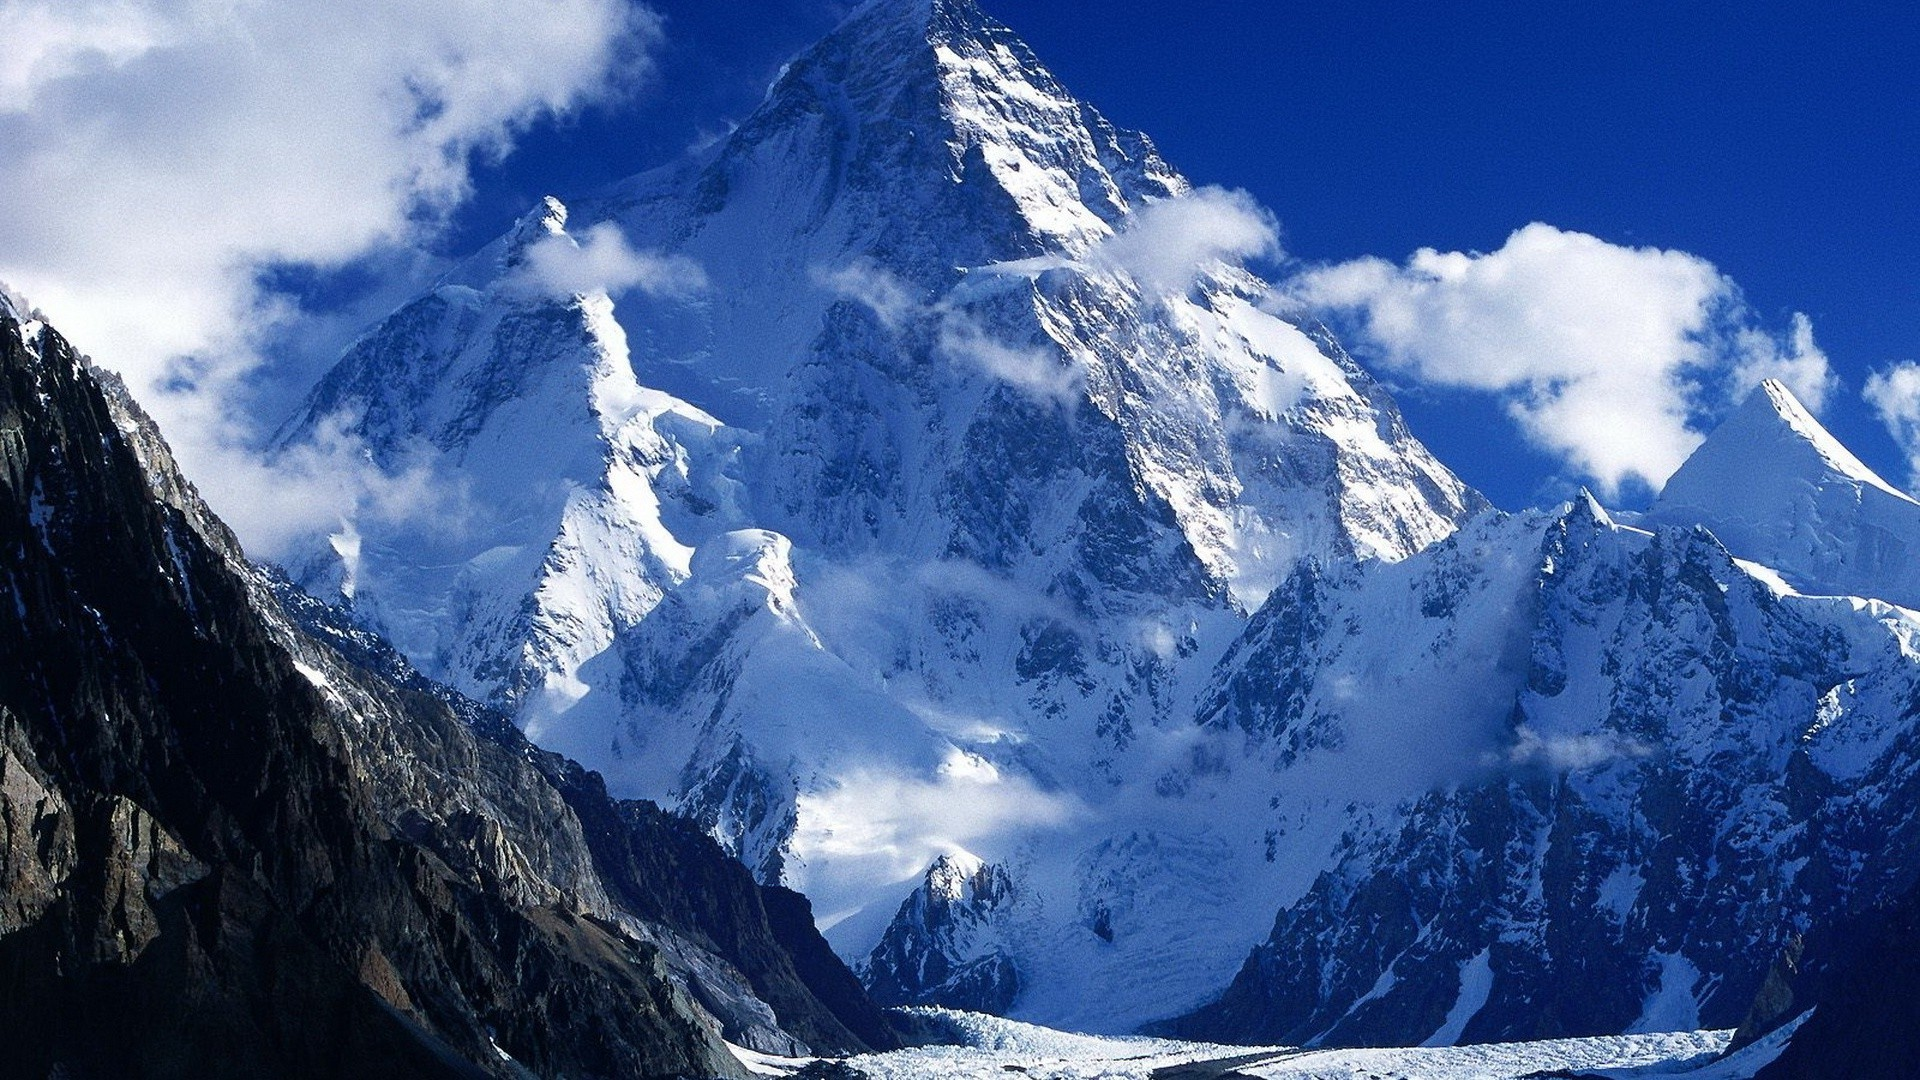 Snowy Background With Mountain: Snowy Mountains Wallpaper